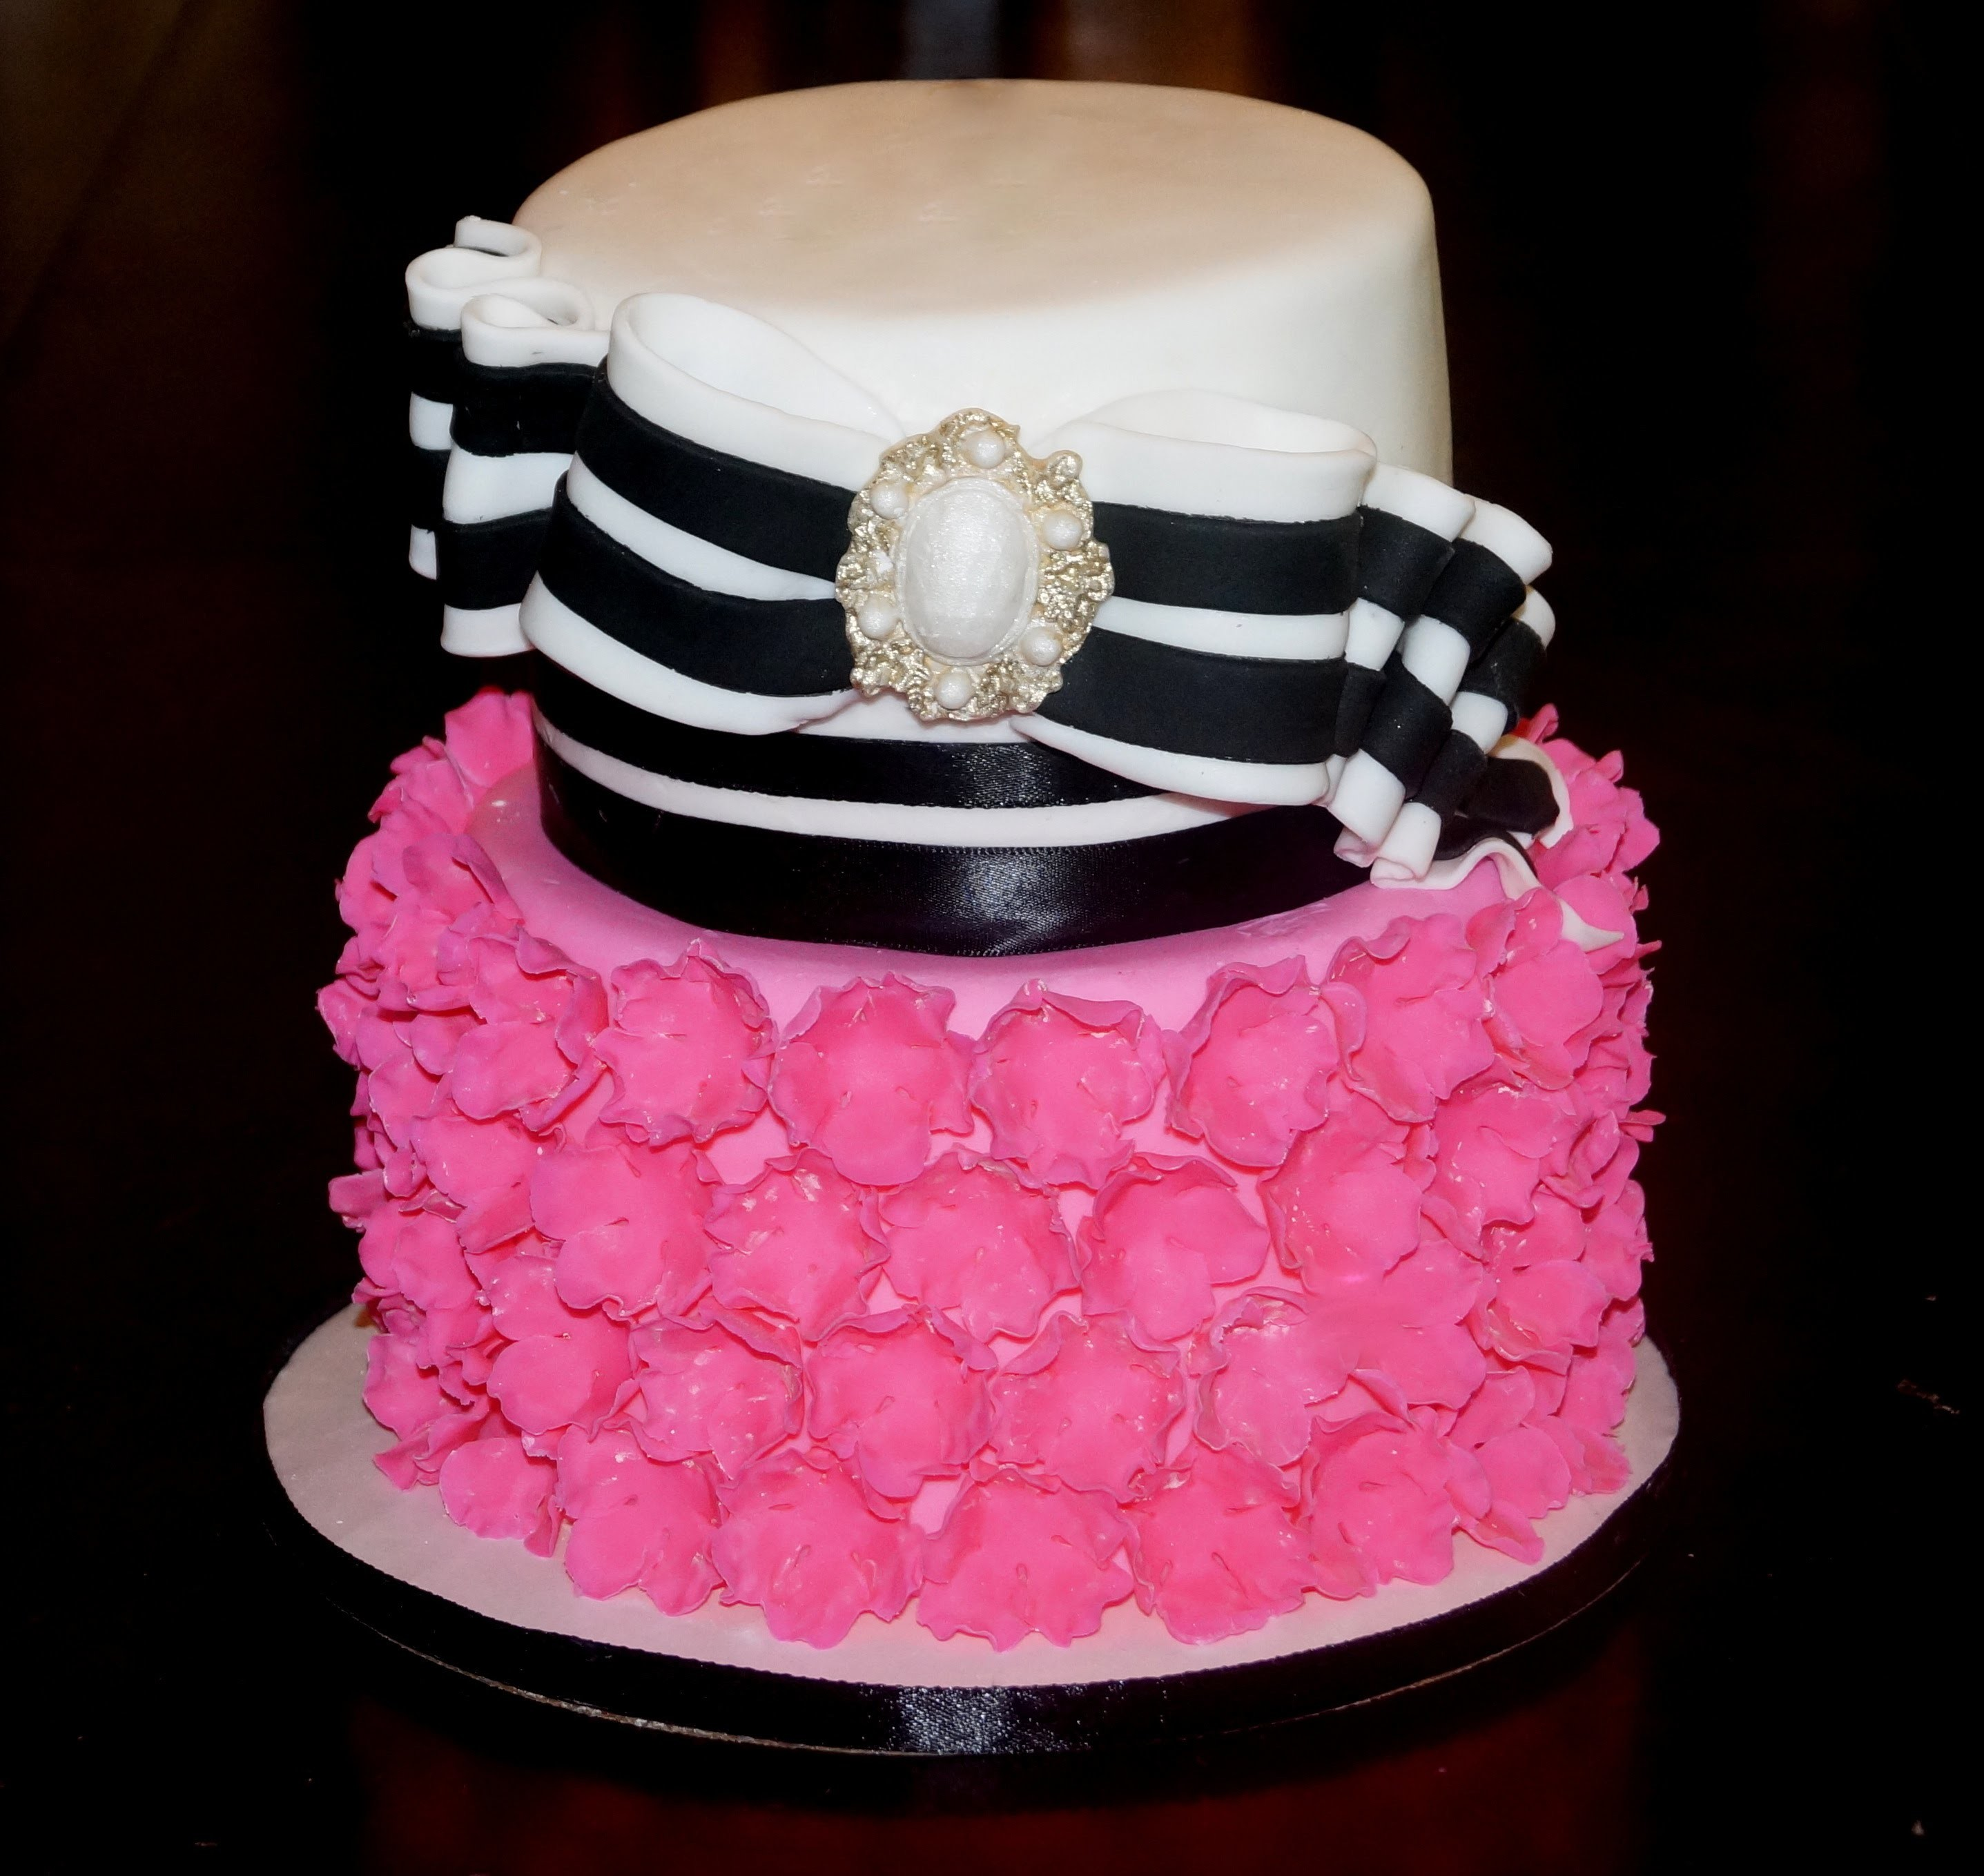 Cake decorating - how to make a striped bow